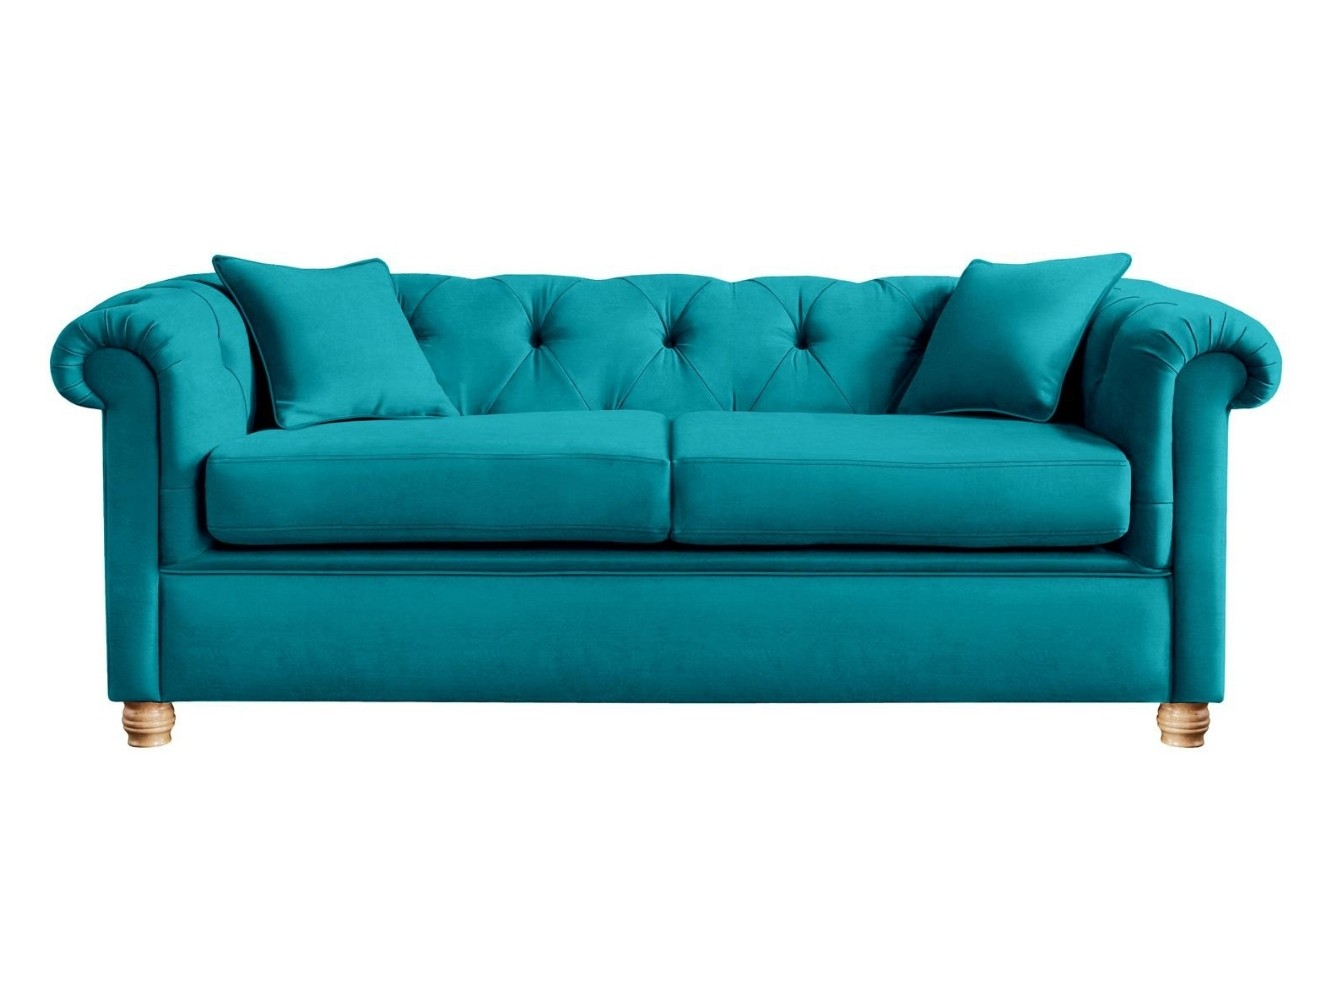 This is how I look in Cotton Velvet Aegean in reflex foam seat cushions